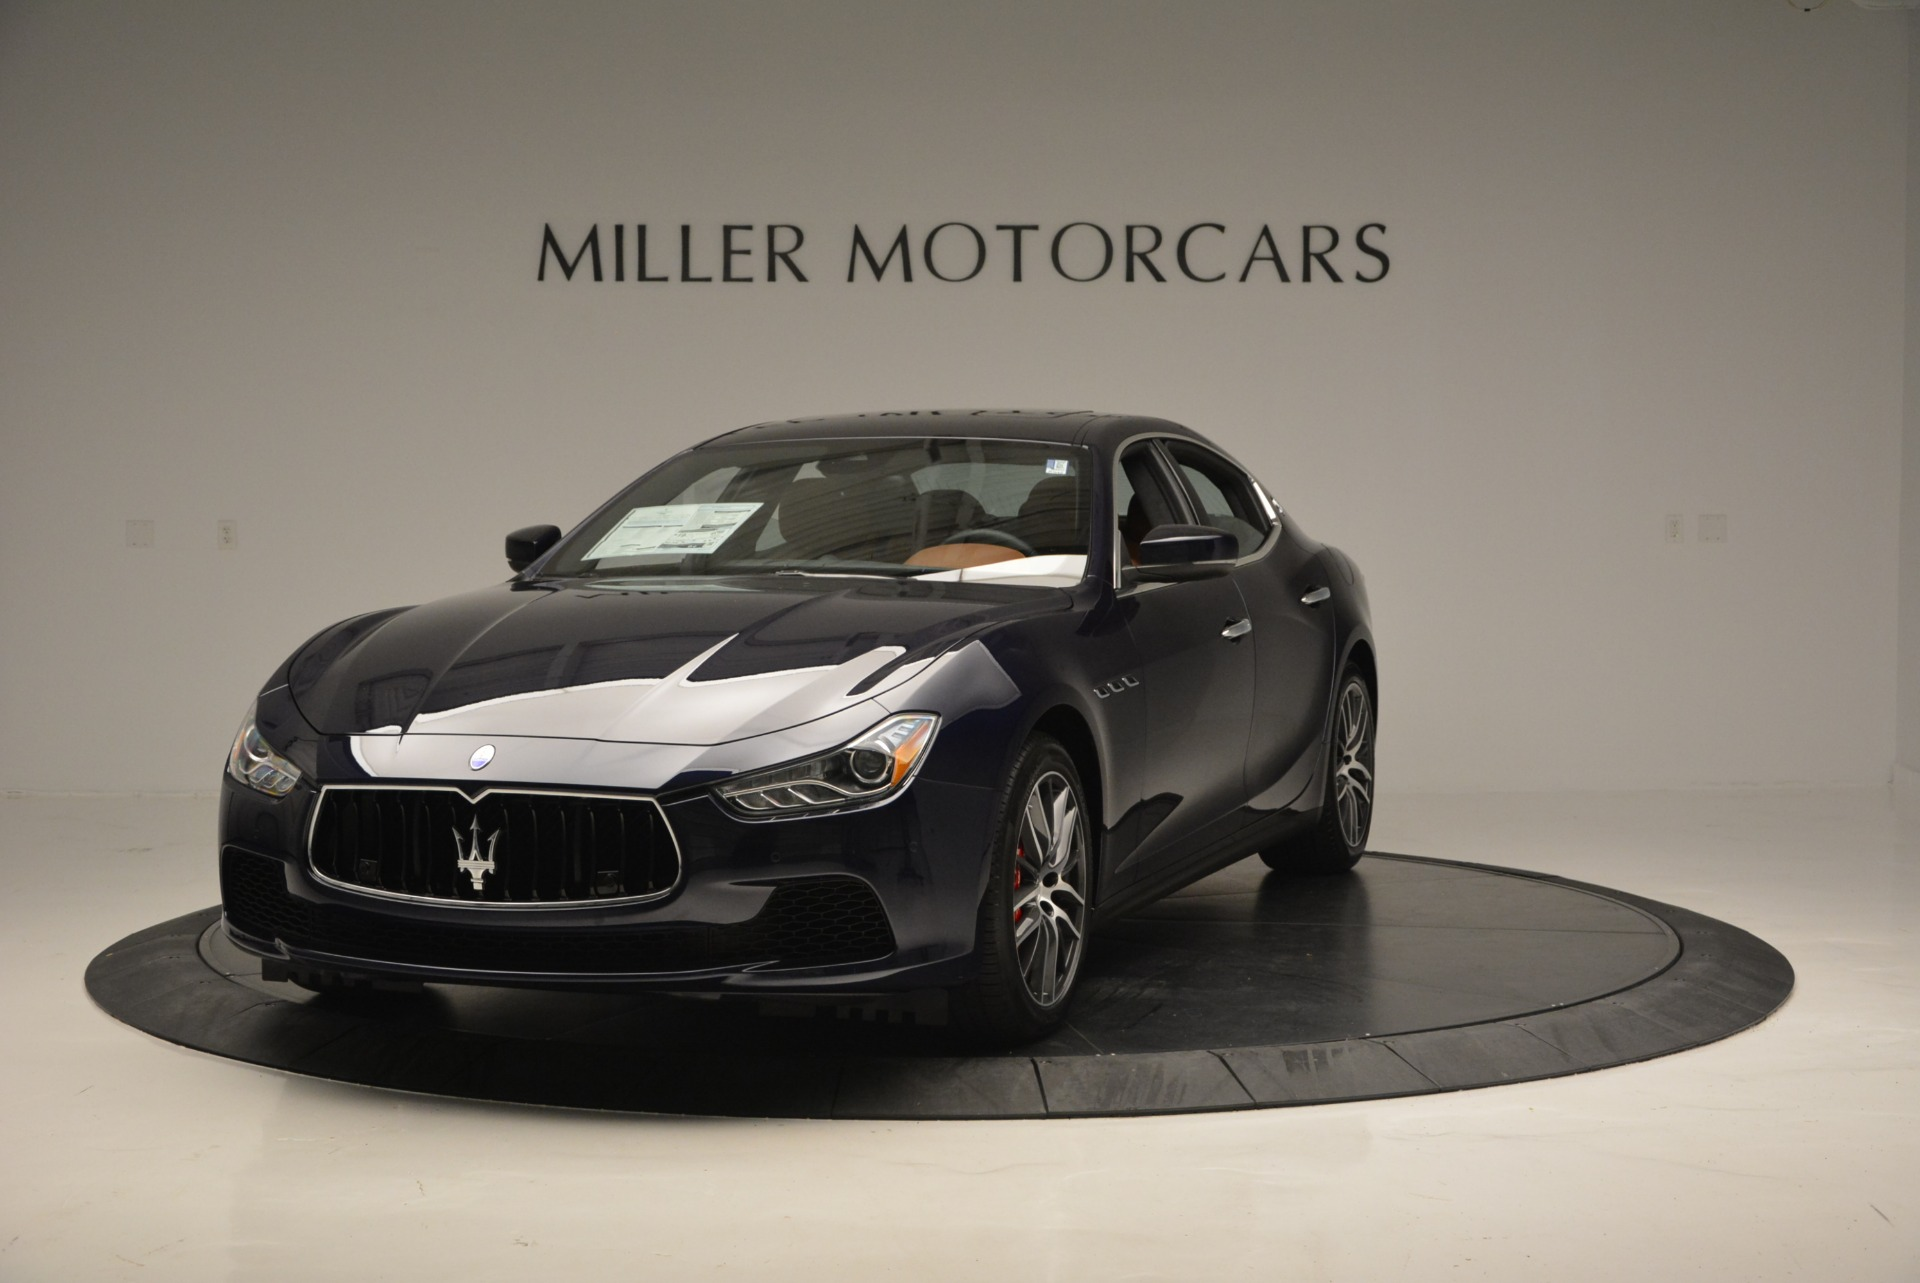 Used 2017 Maserati Ghibli S Q4 for sale $44,900 at Bugatti of Greenwich in Greenwich CT 06830 1